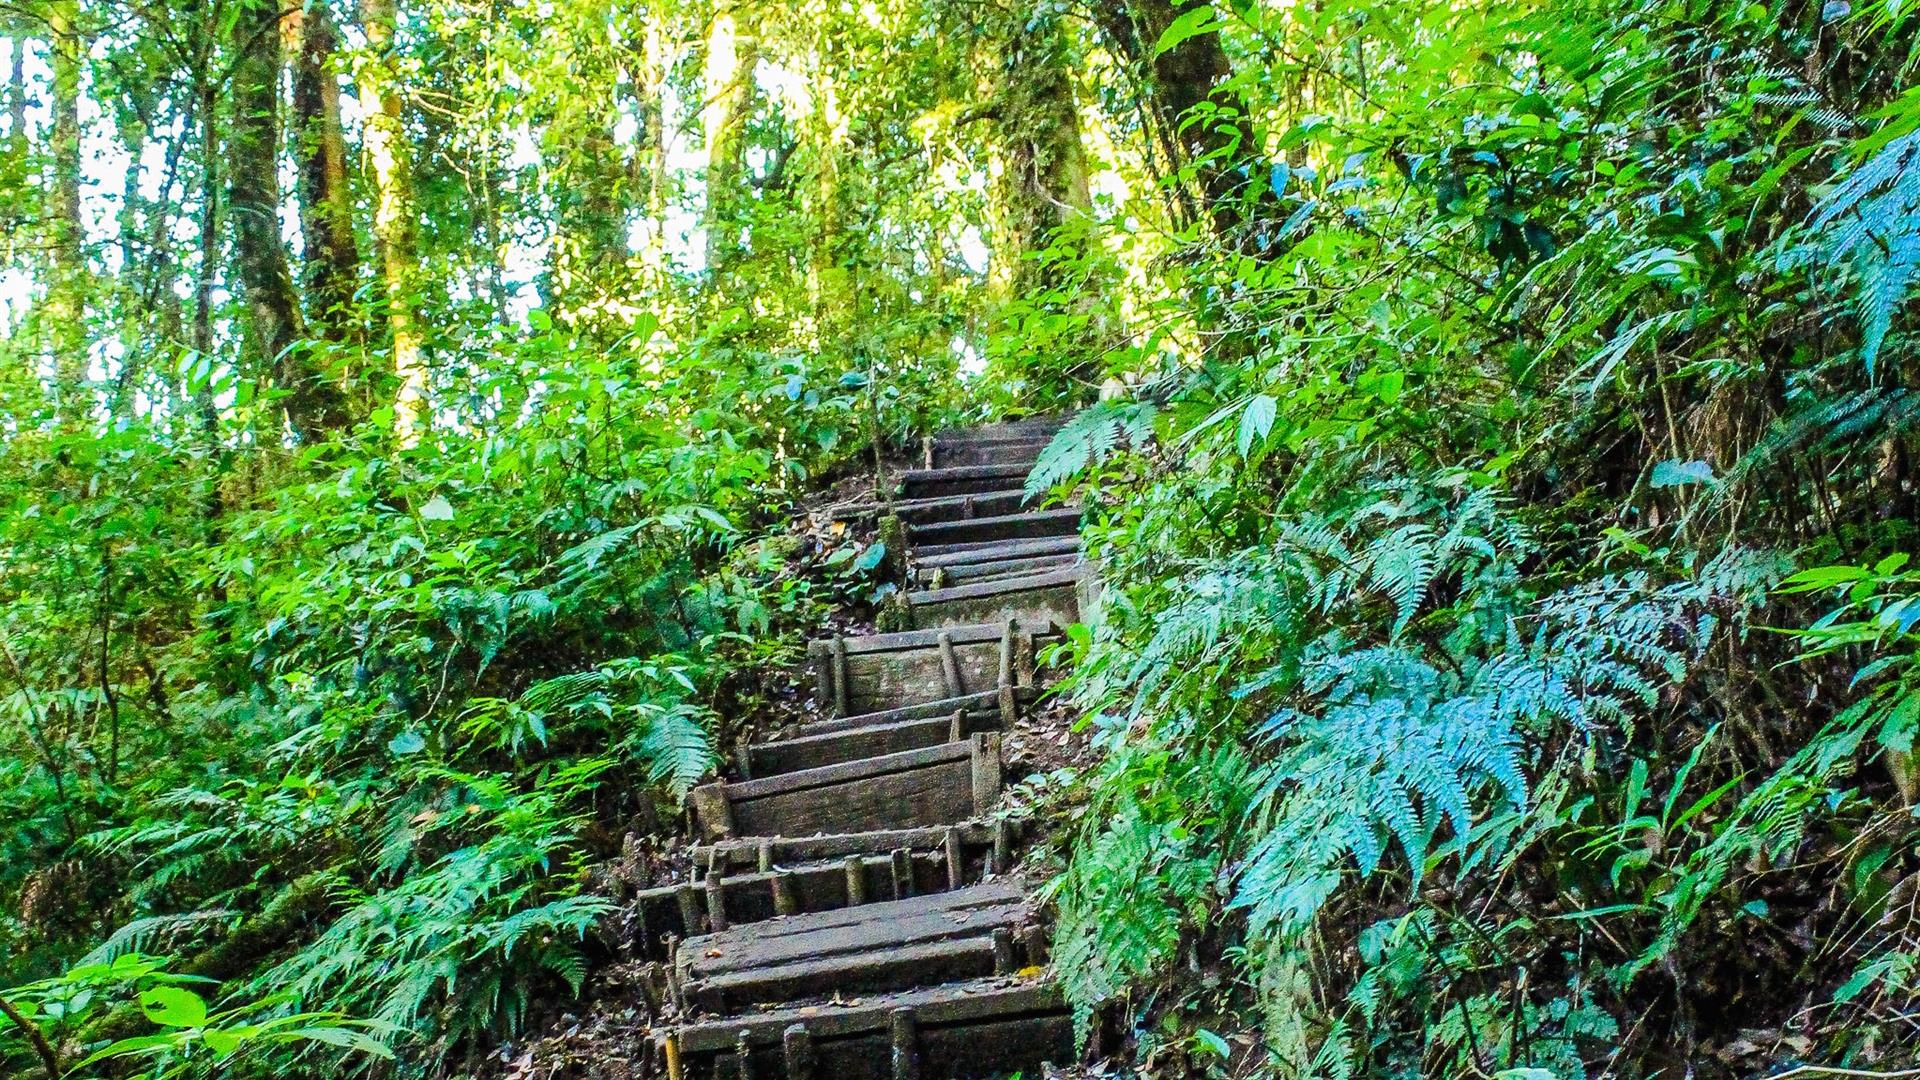 Landscape Photo Of Stair In The Forest 904789